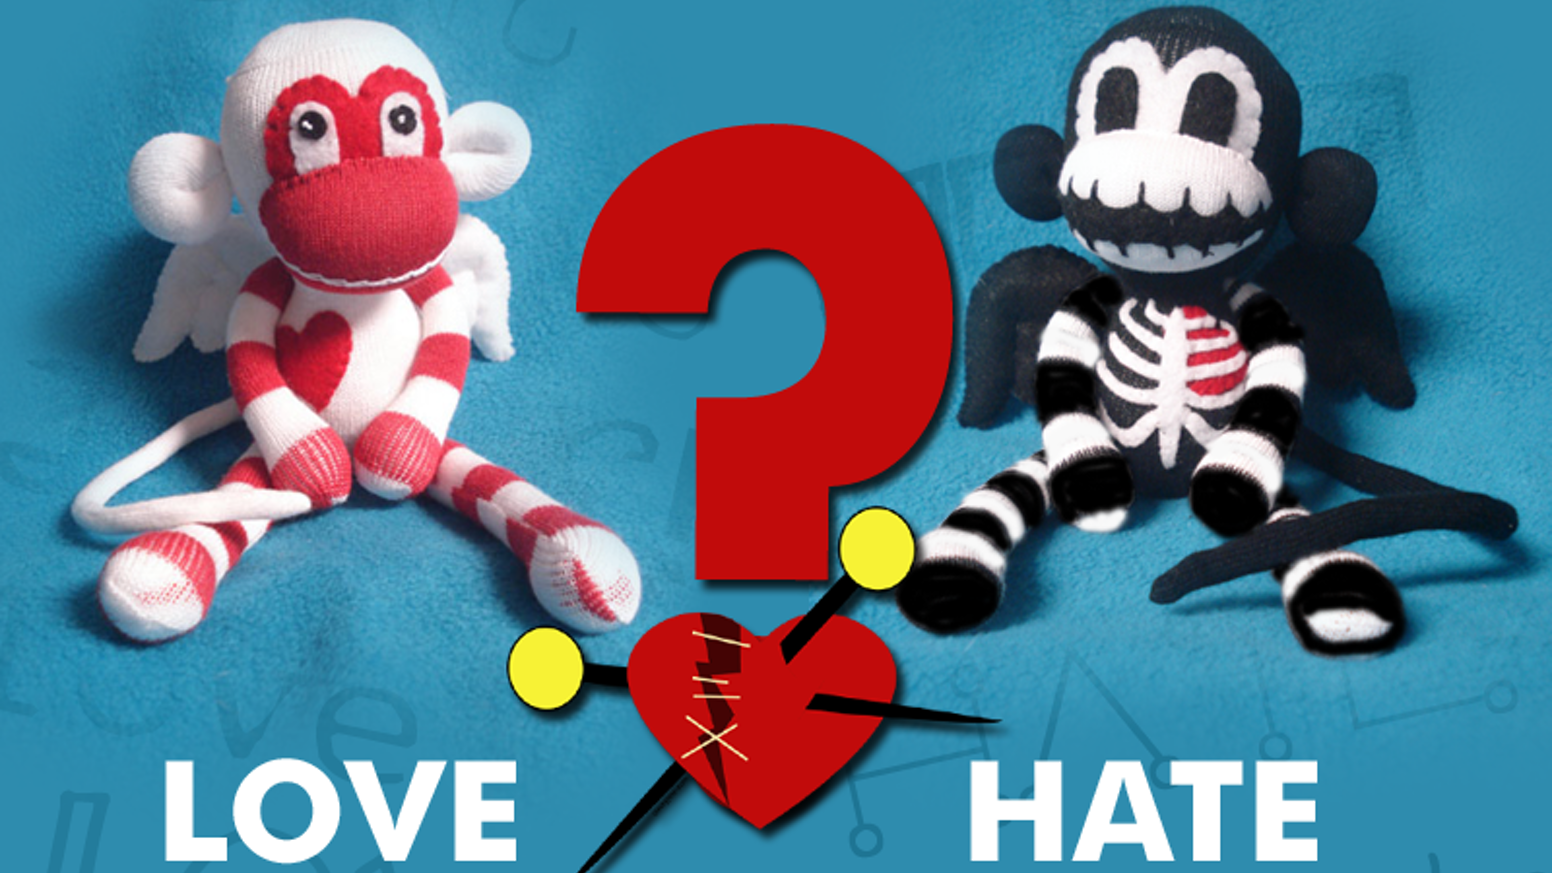 Love/Hate Valentine\'s Day Sock Monkey Project by Stacey Jean.